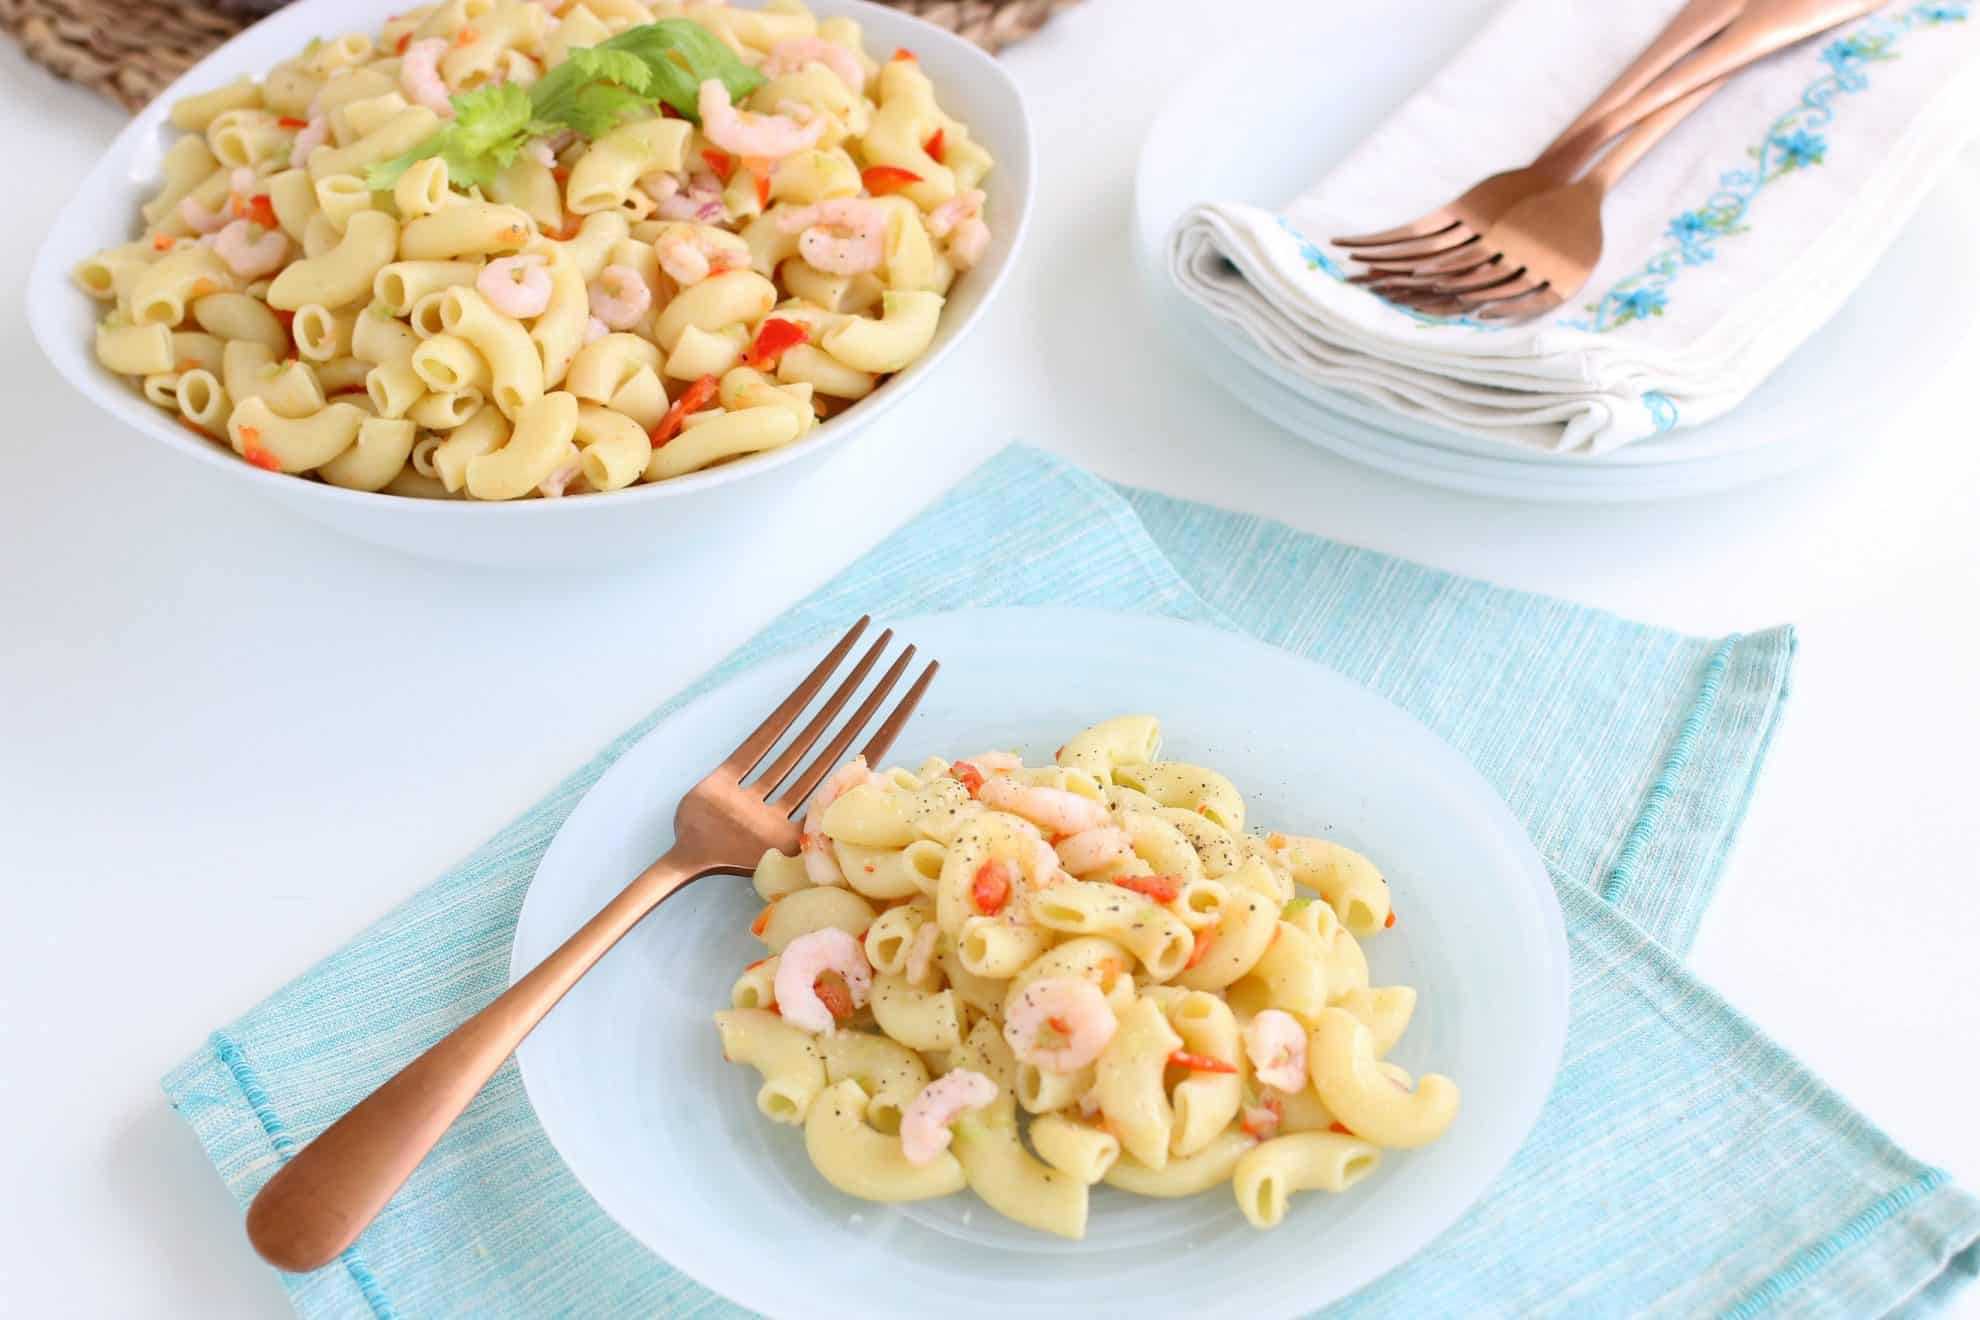 Pasta salad on a side plate